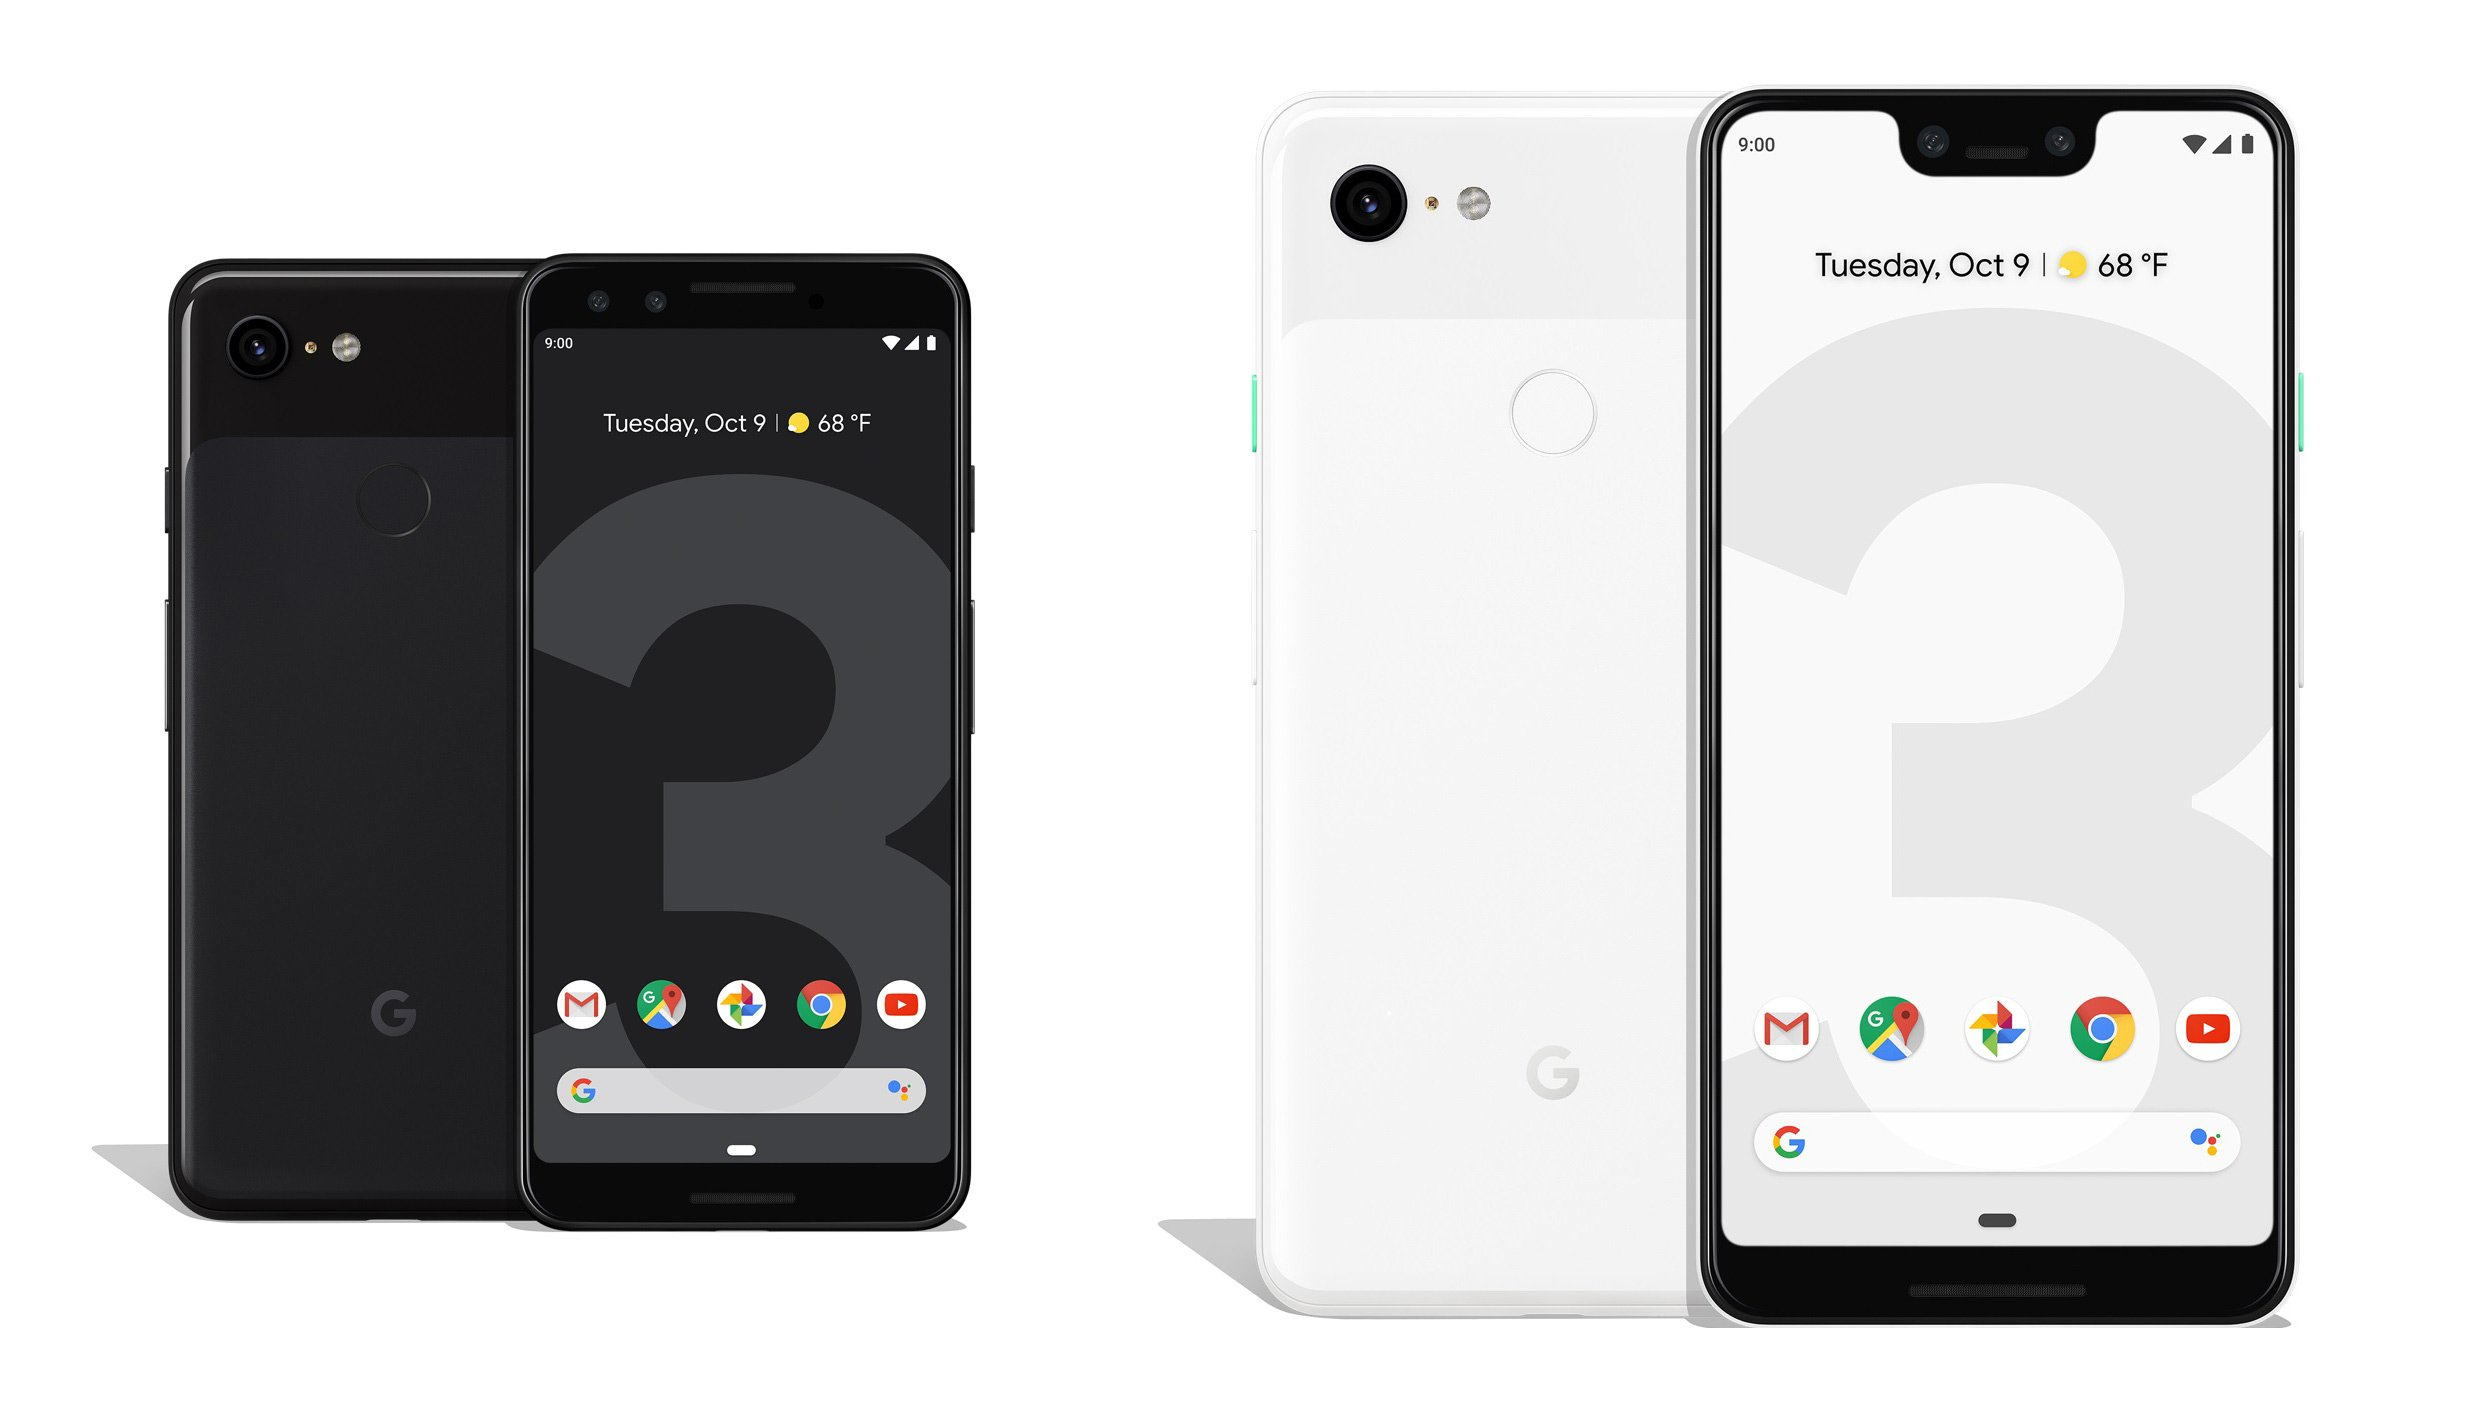 DisplayMate says the Pixel 3 XL display gets an 'A+ Rating'